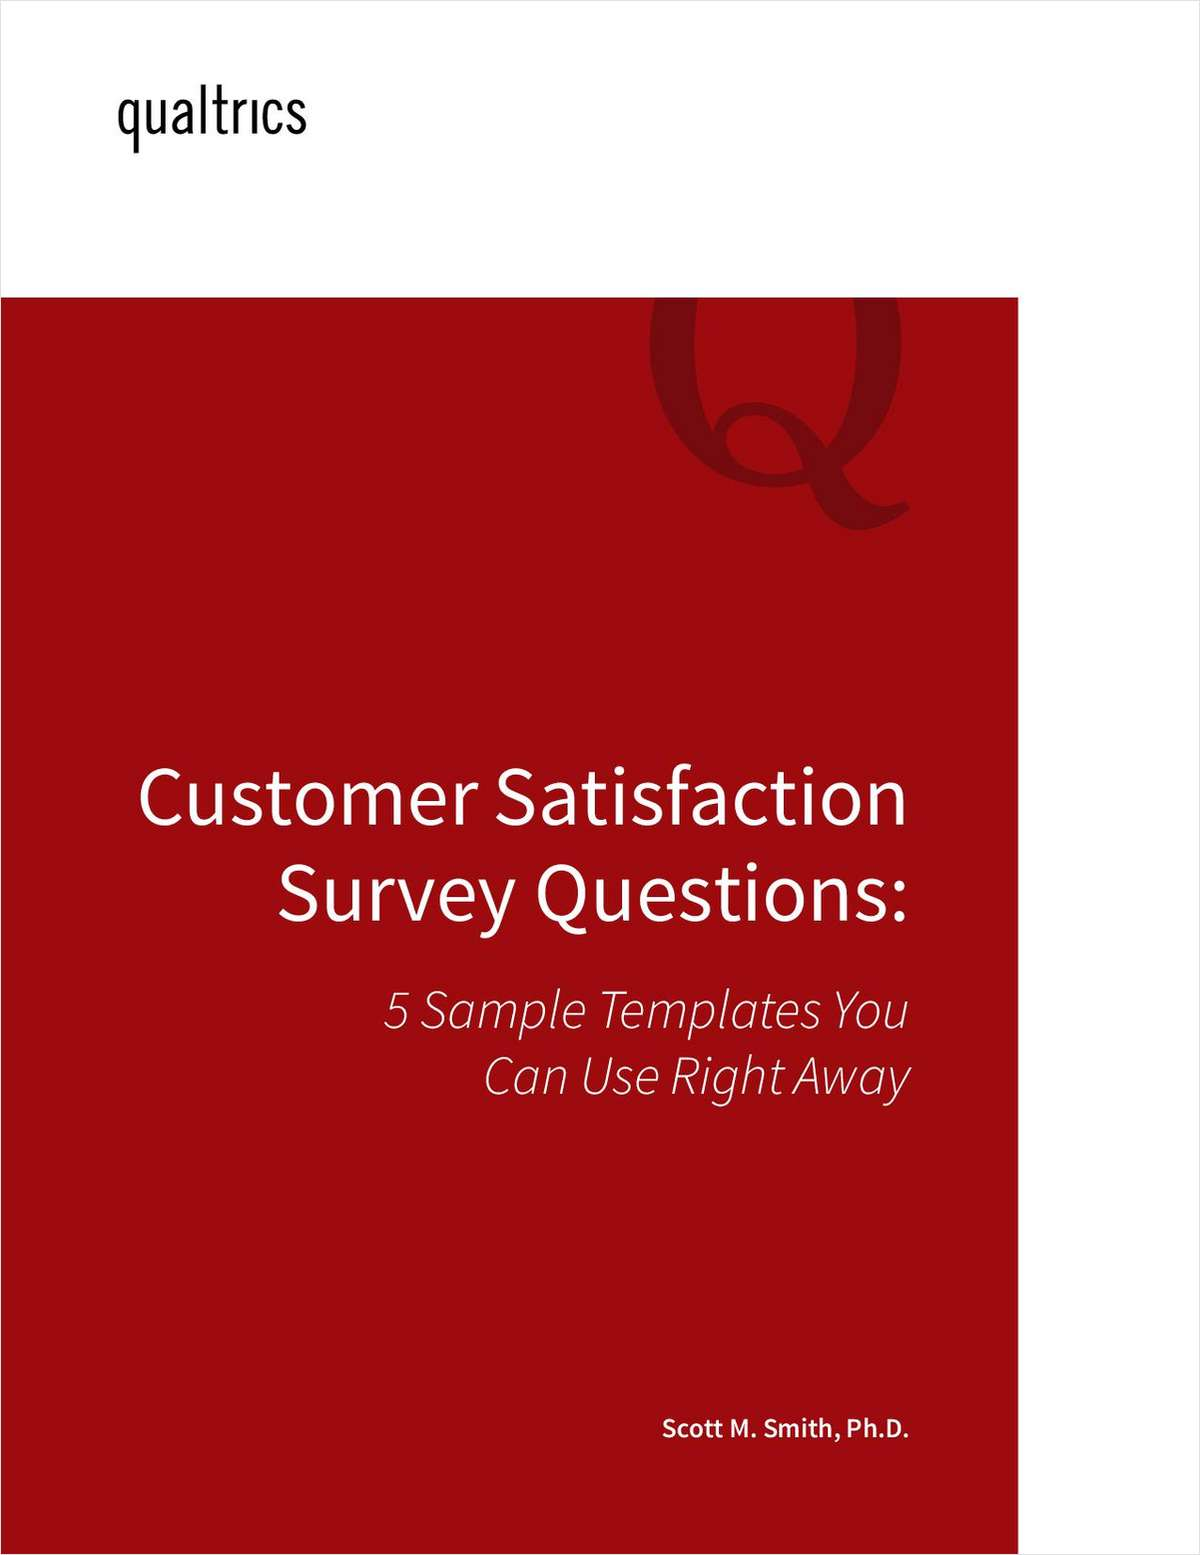 5 Customer Satisfaction Templates You Can Use Right Away